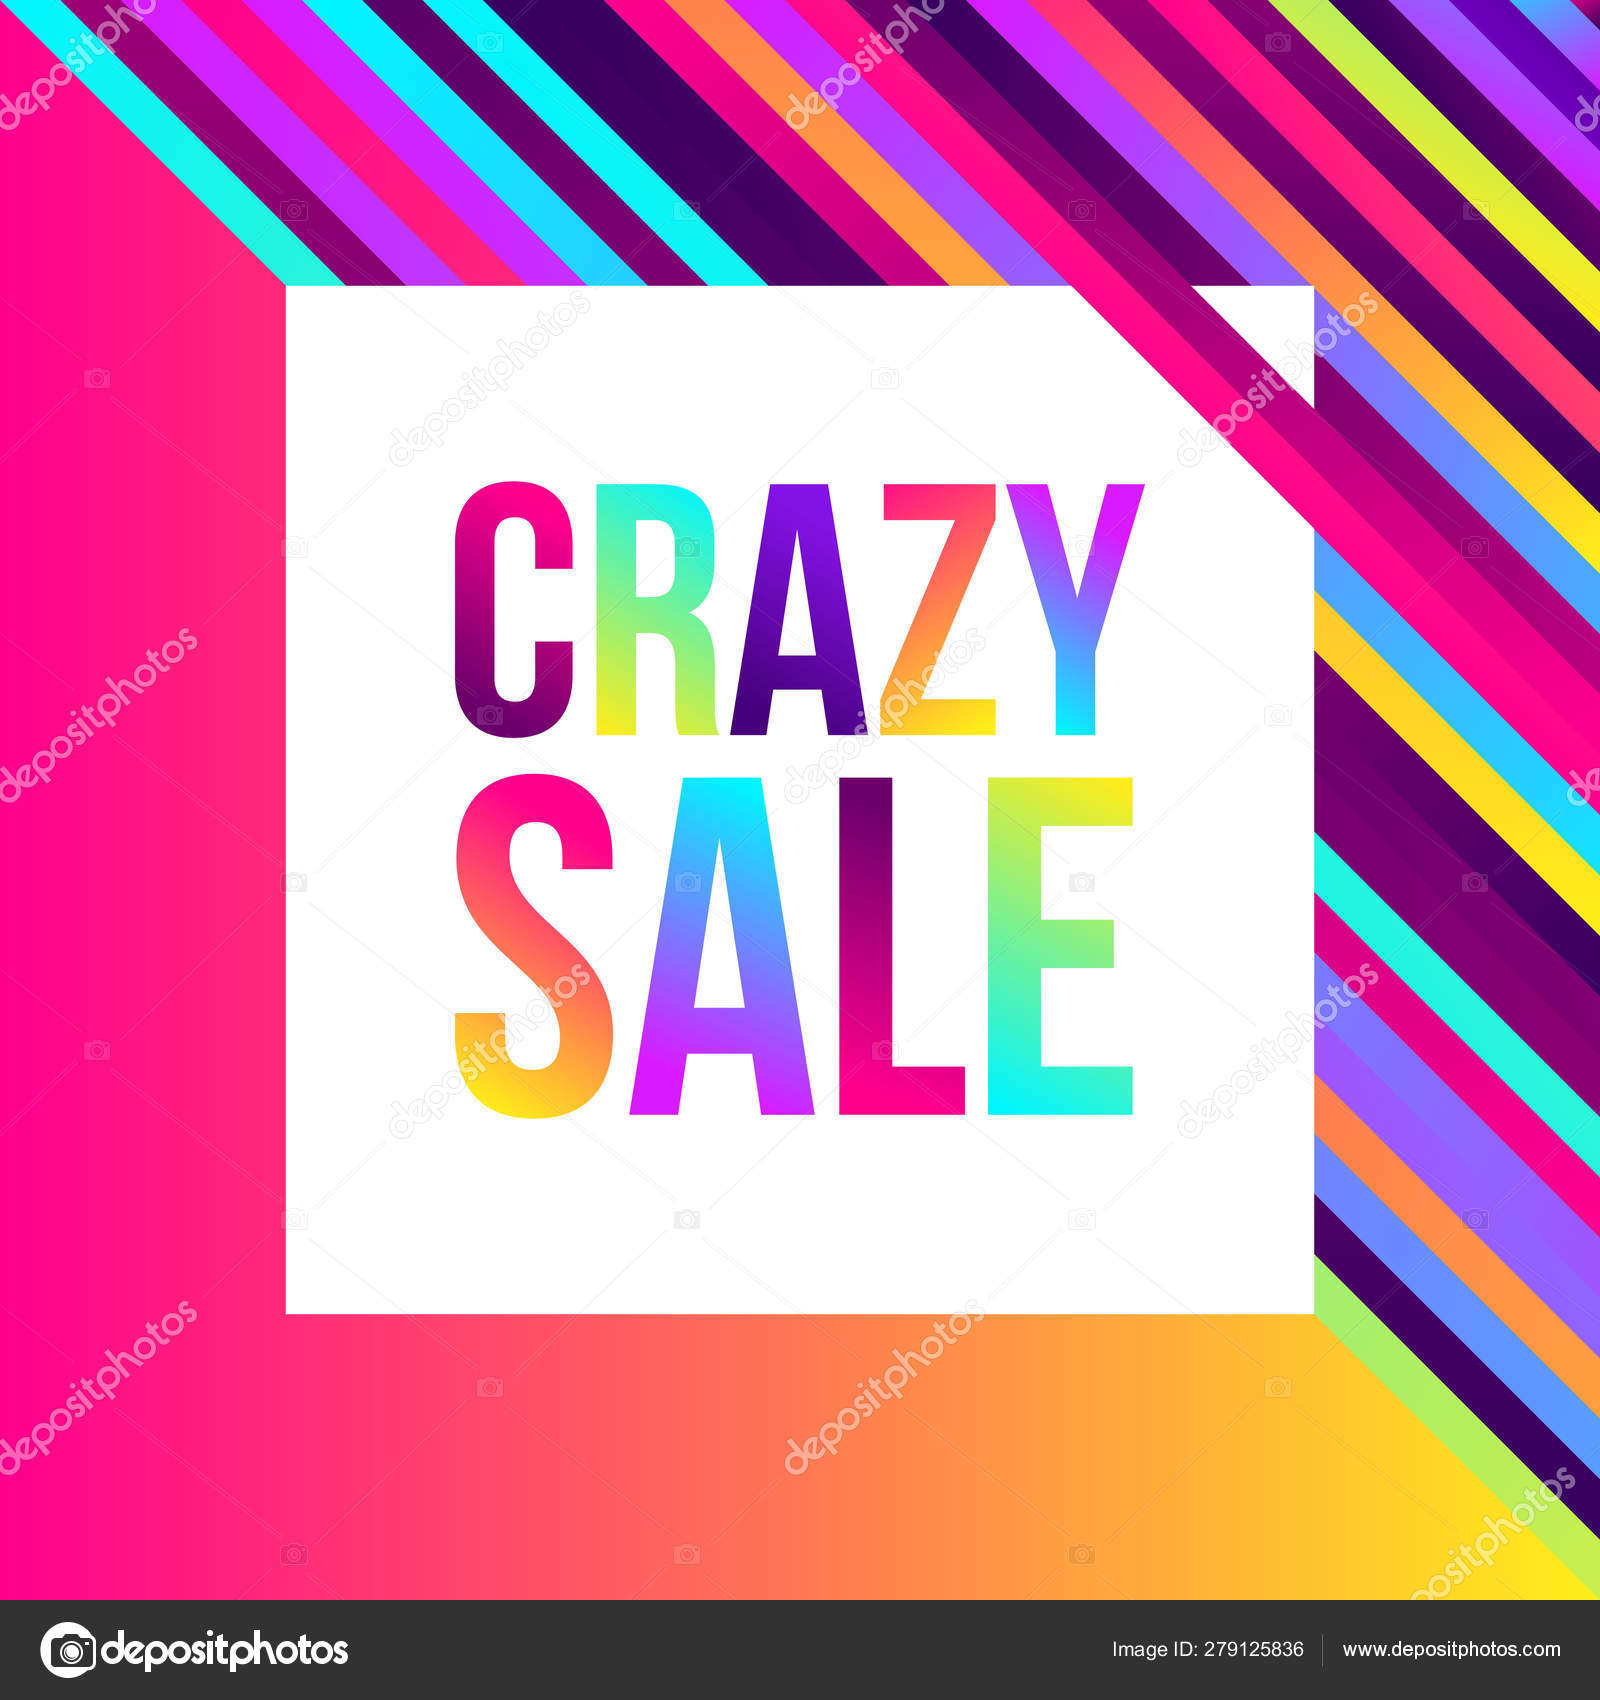 Crazy sale web banner, lots of colorful lines, frame for